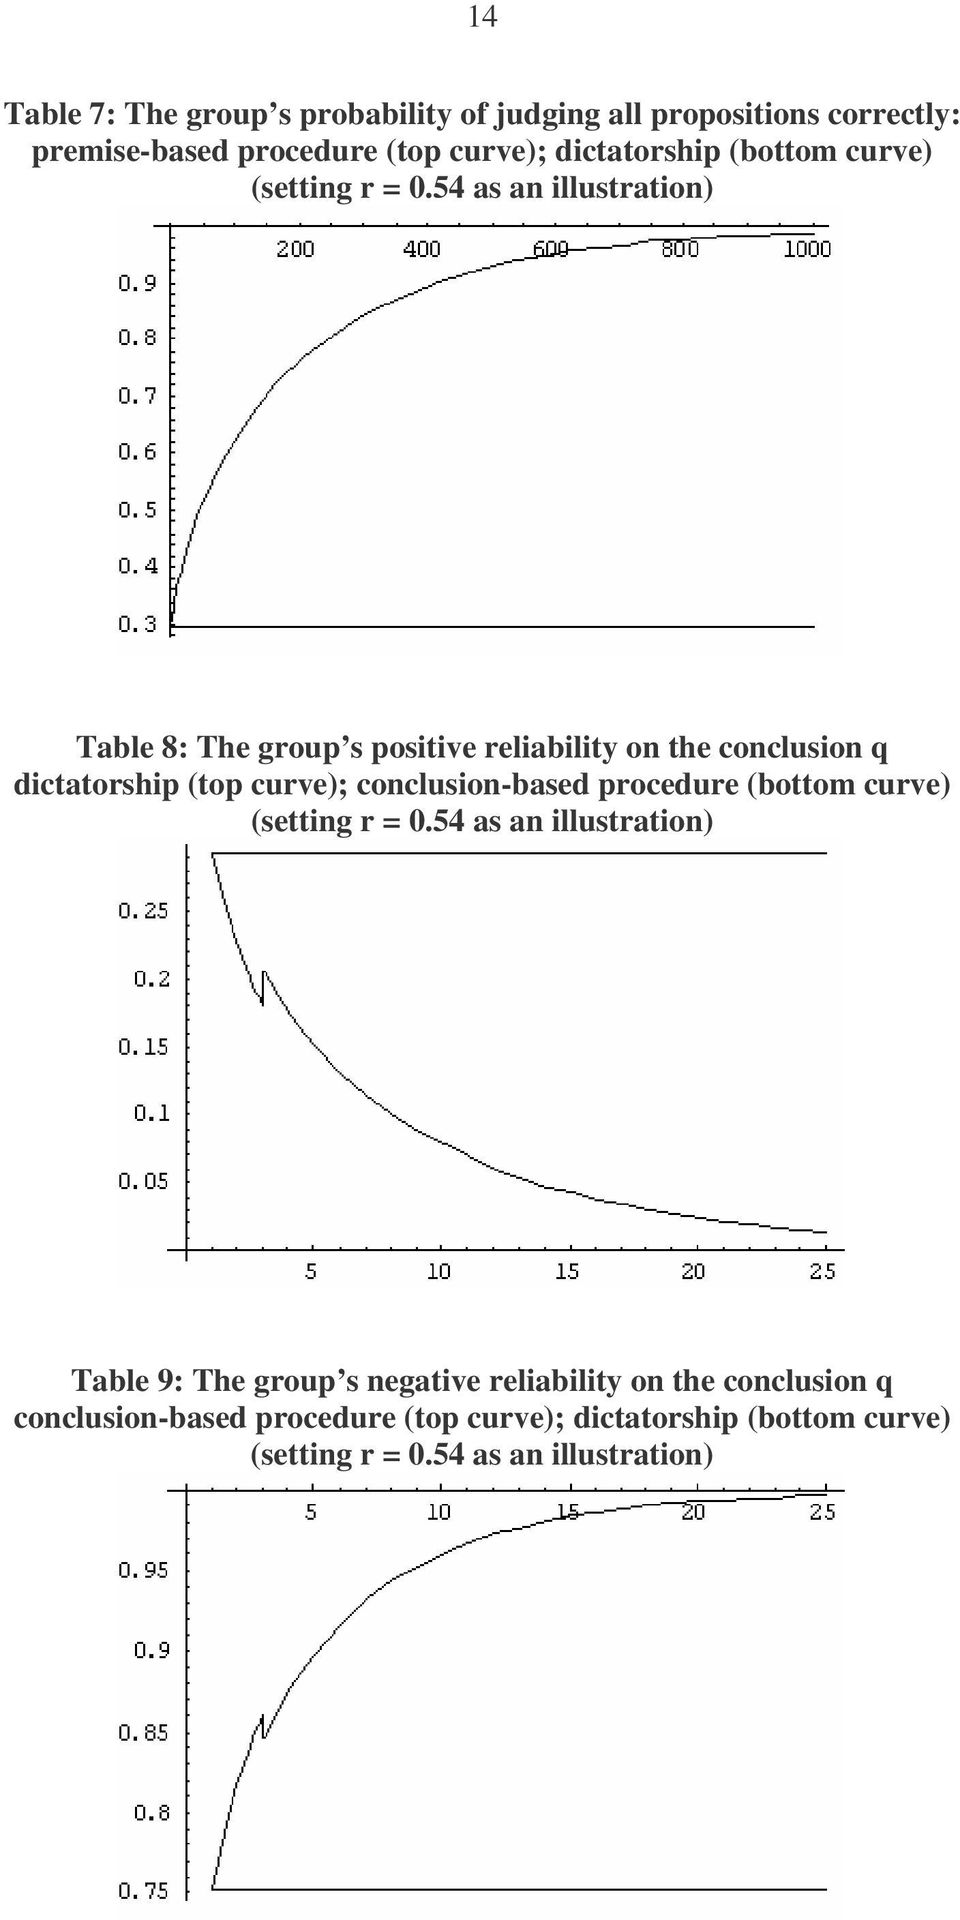 54 as an illustration) Table 8: The group s positive reliability on the conclusion q dictatorship (top curve); conclusion-based